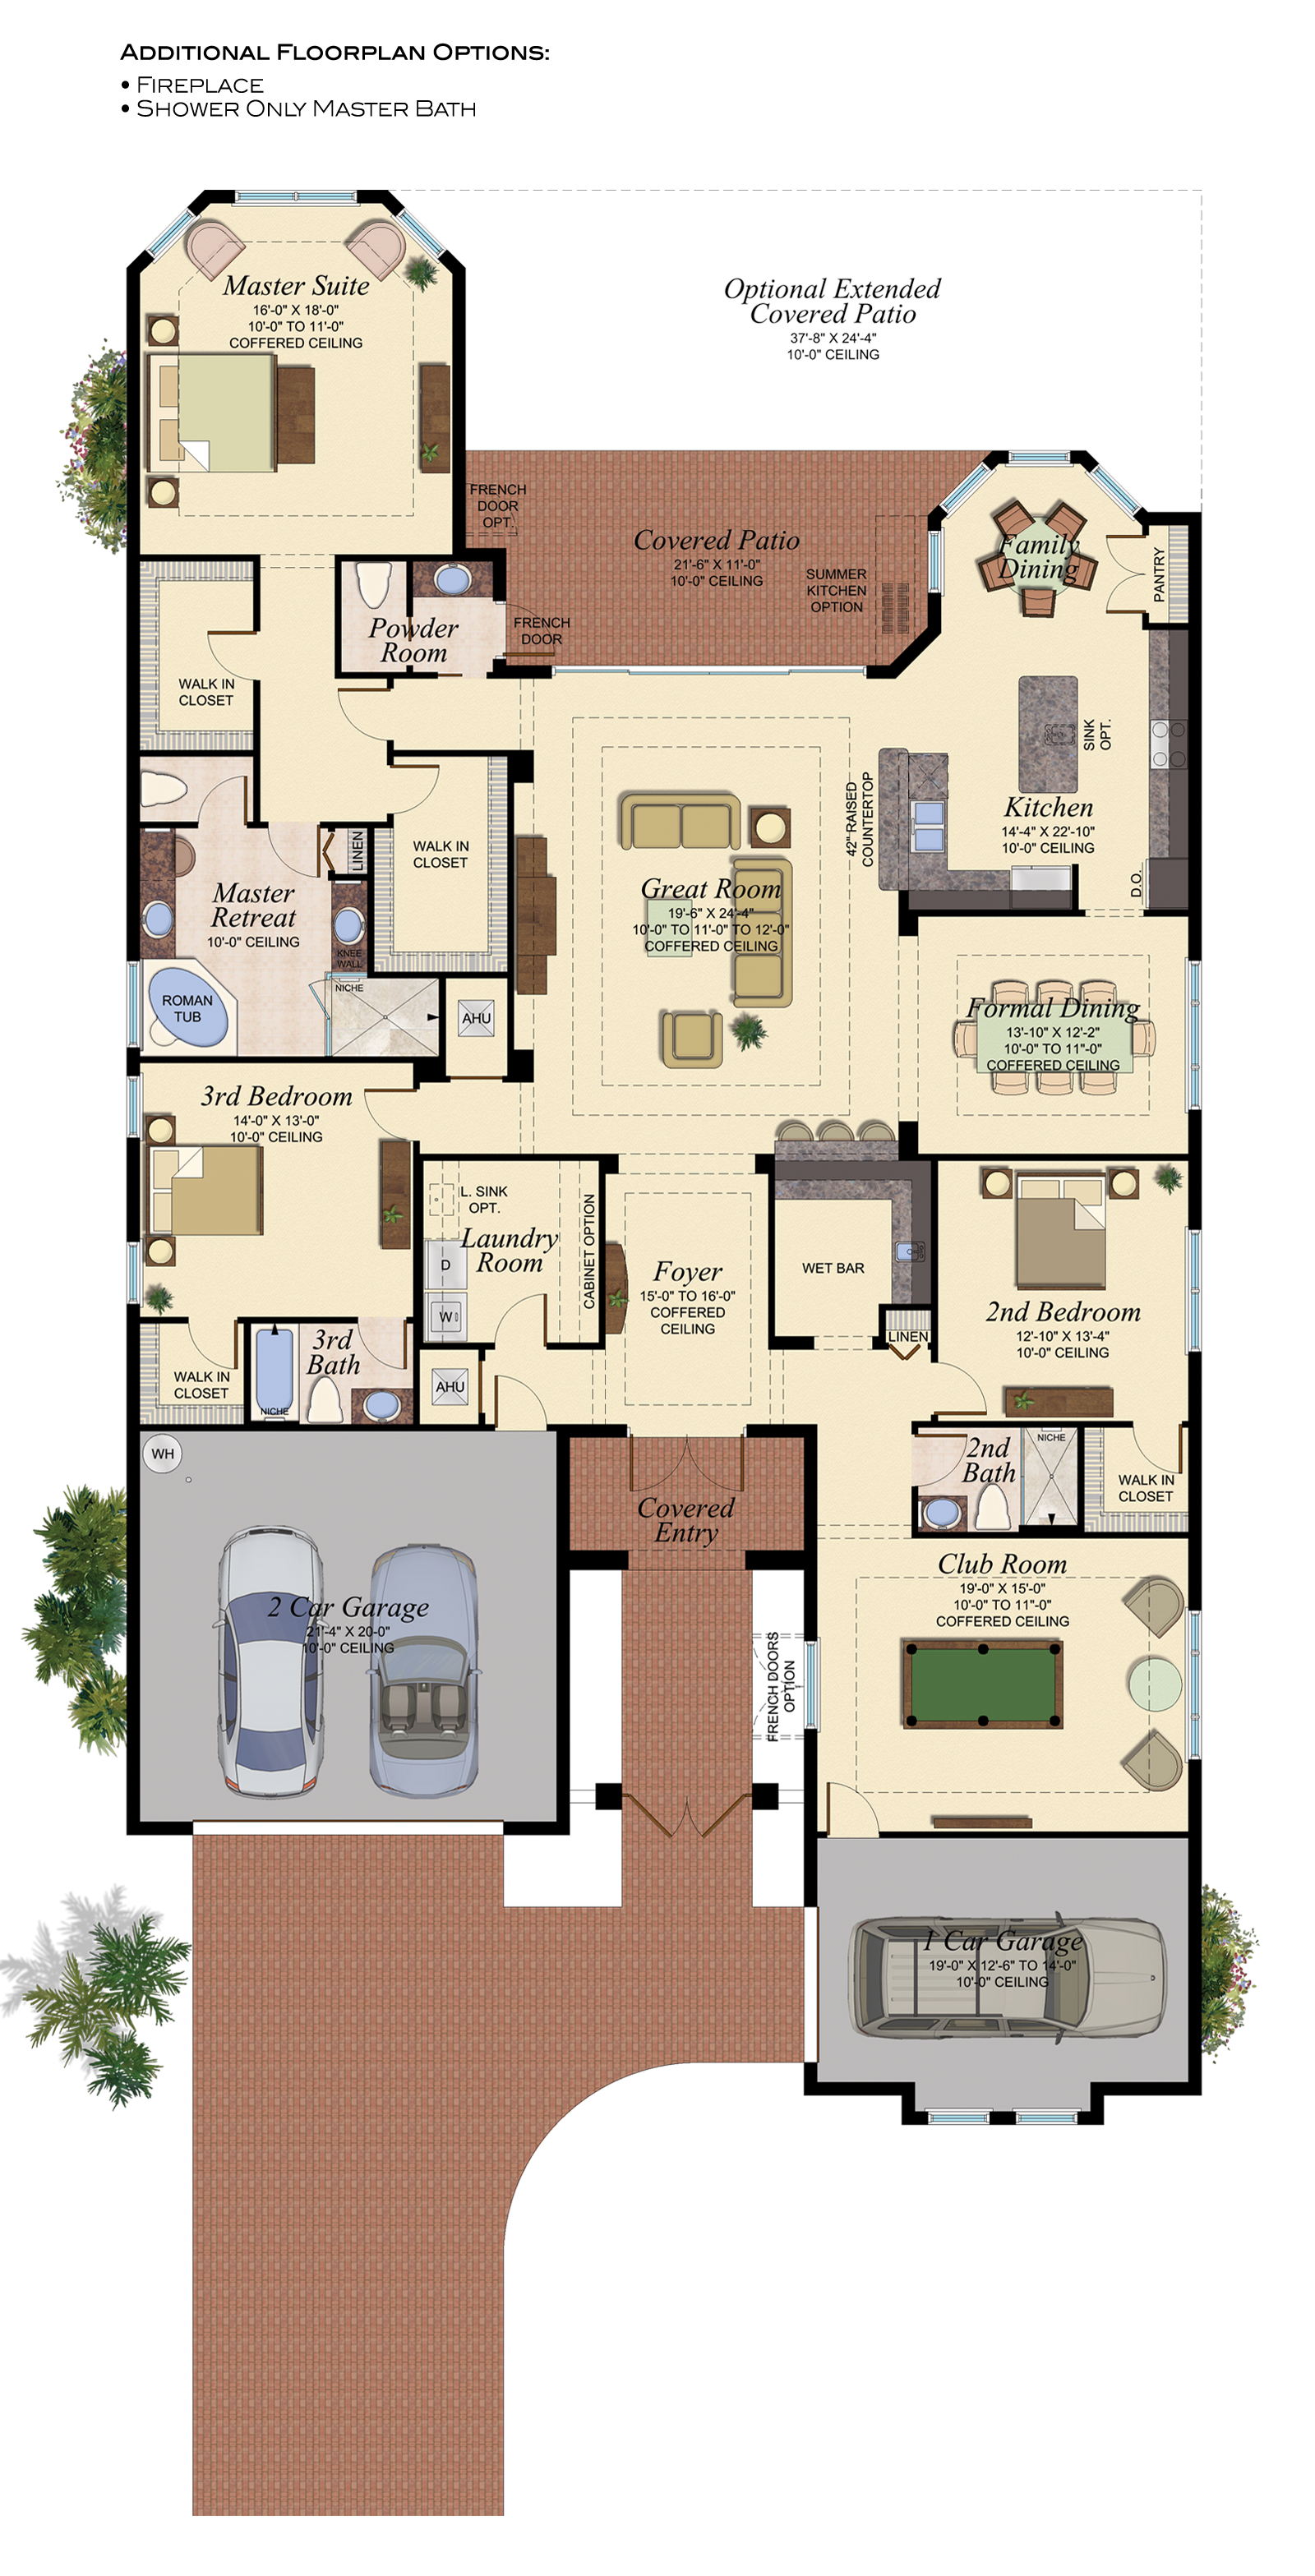 GL Homes in 2019 | Floor plans, Architectural house plans ... on townhouse plans florida, kitchen cabinets florida, cottage plans florida, open floor plans florida, swimming pool plans florida,